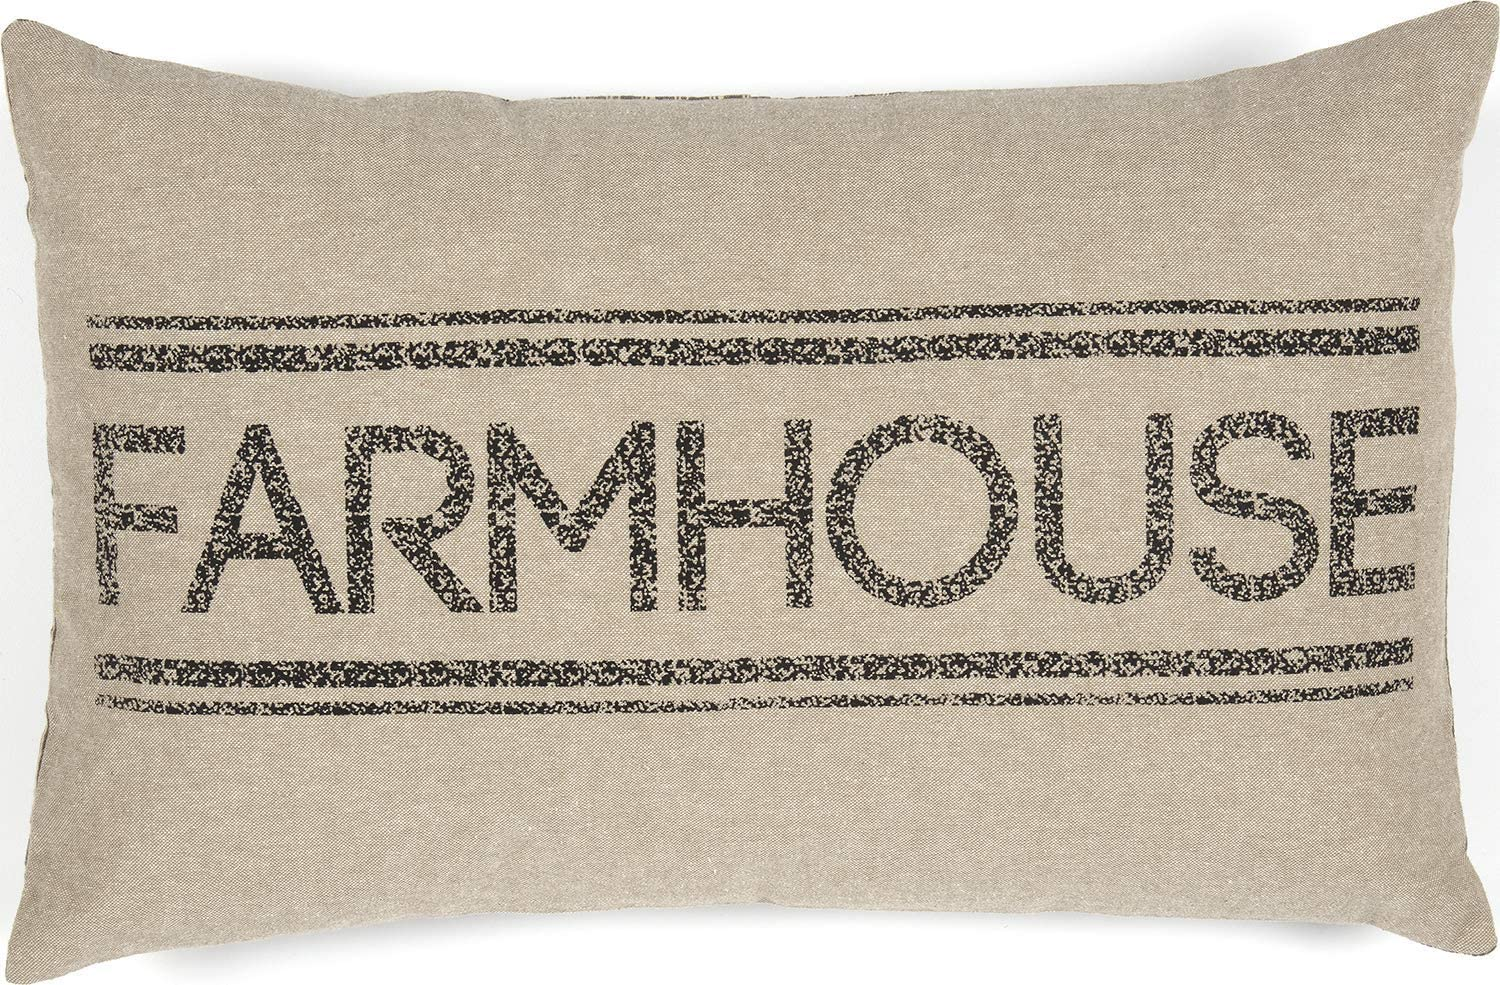 VHC Brands Pillows & Throws-Sawyer Mill Tan 14